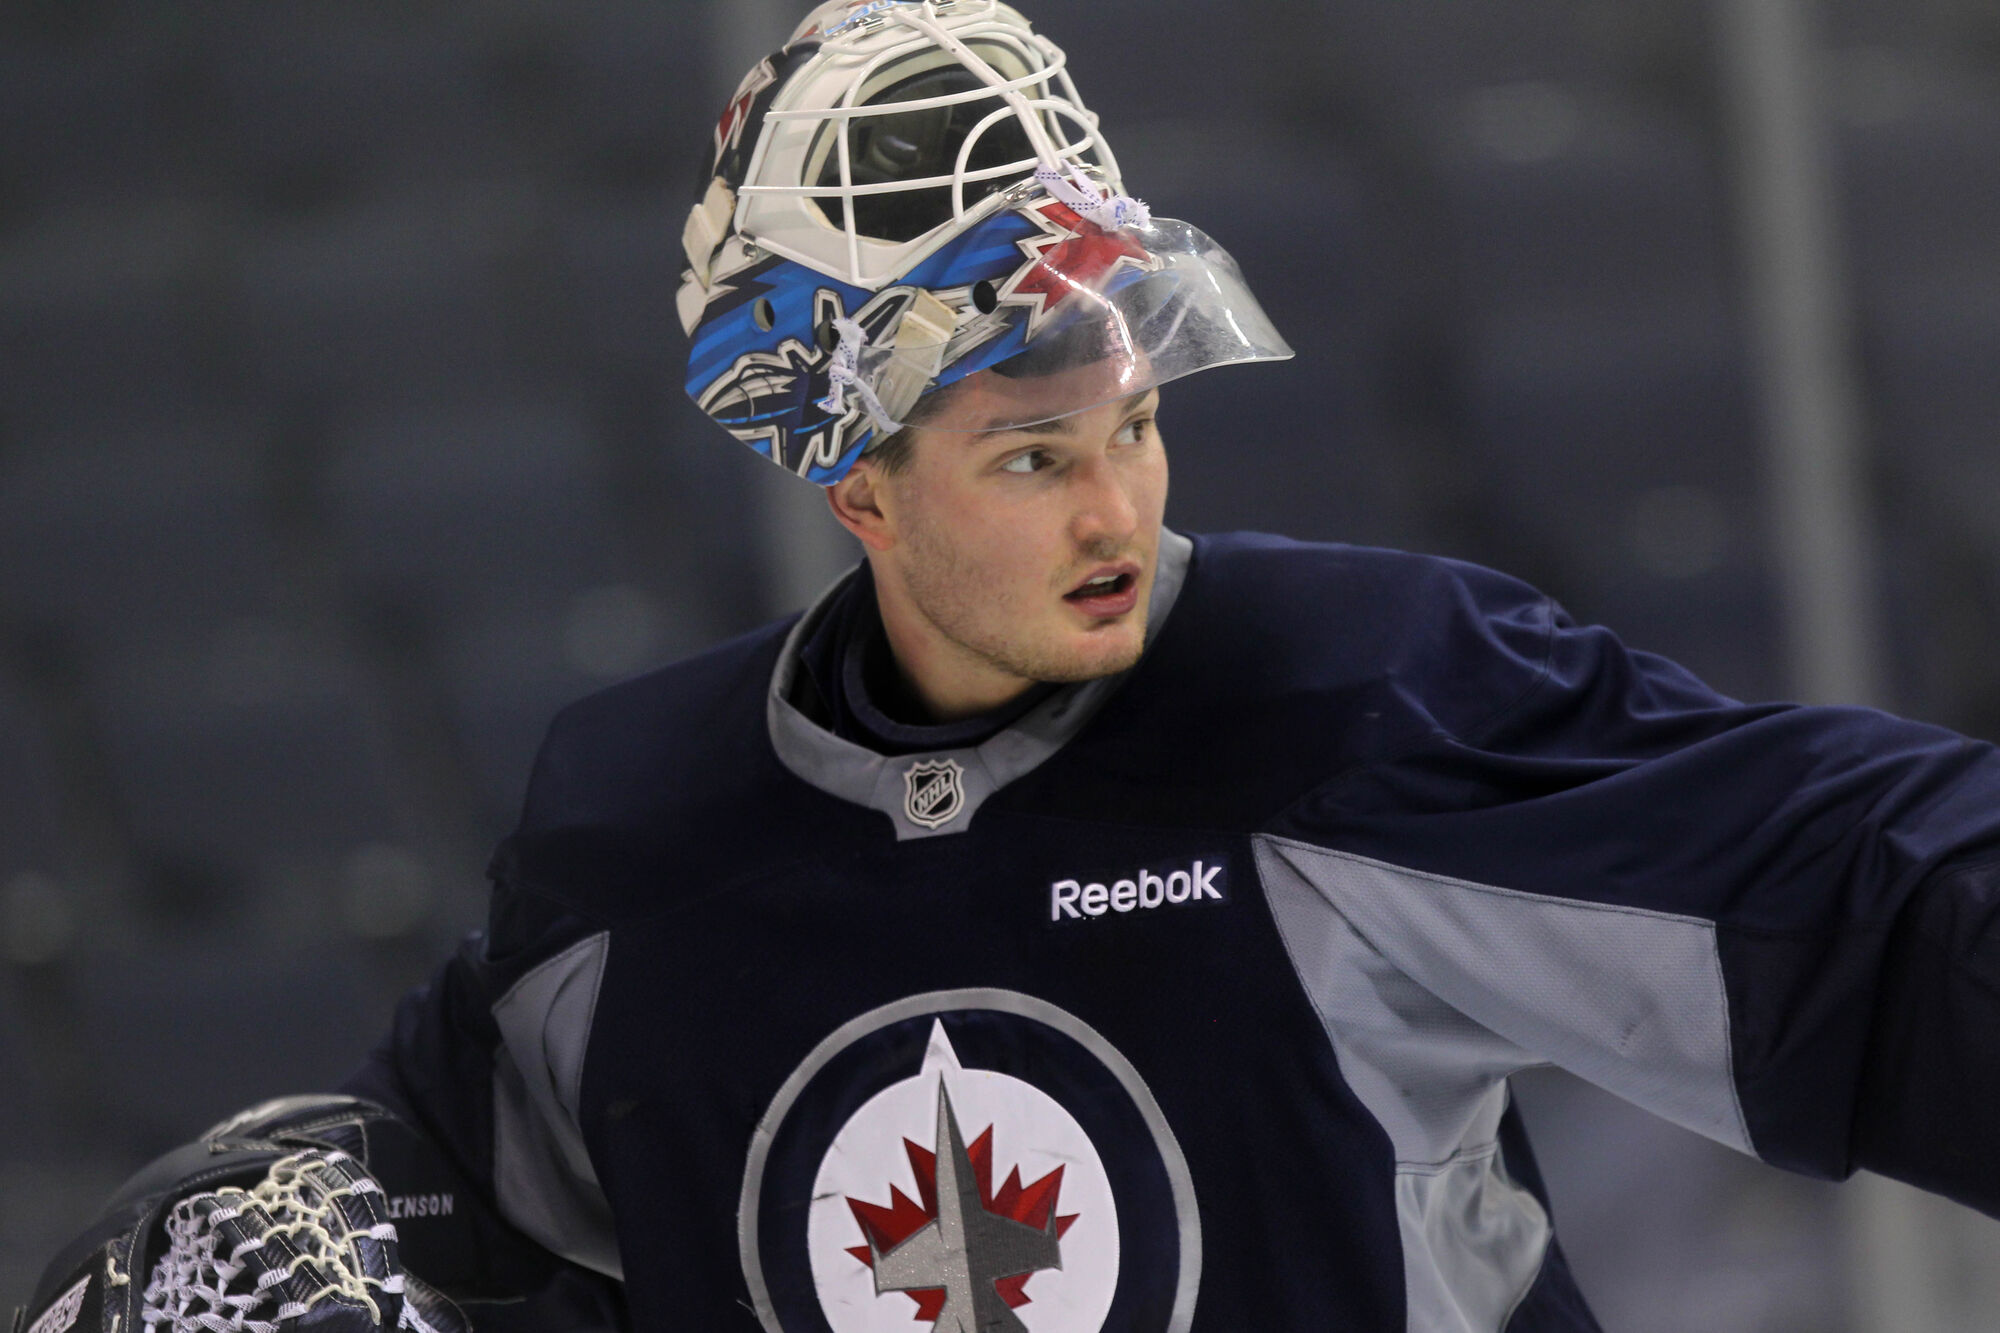 Goalie Michael Hutchinson has signed with the Florida Panthers.    Winnipeg Jets goalie #34 Michael Hutchinson at  practice at MTS Centre Wednesday.      Dec 7, 2016